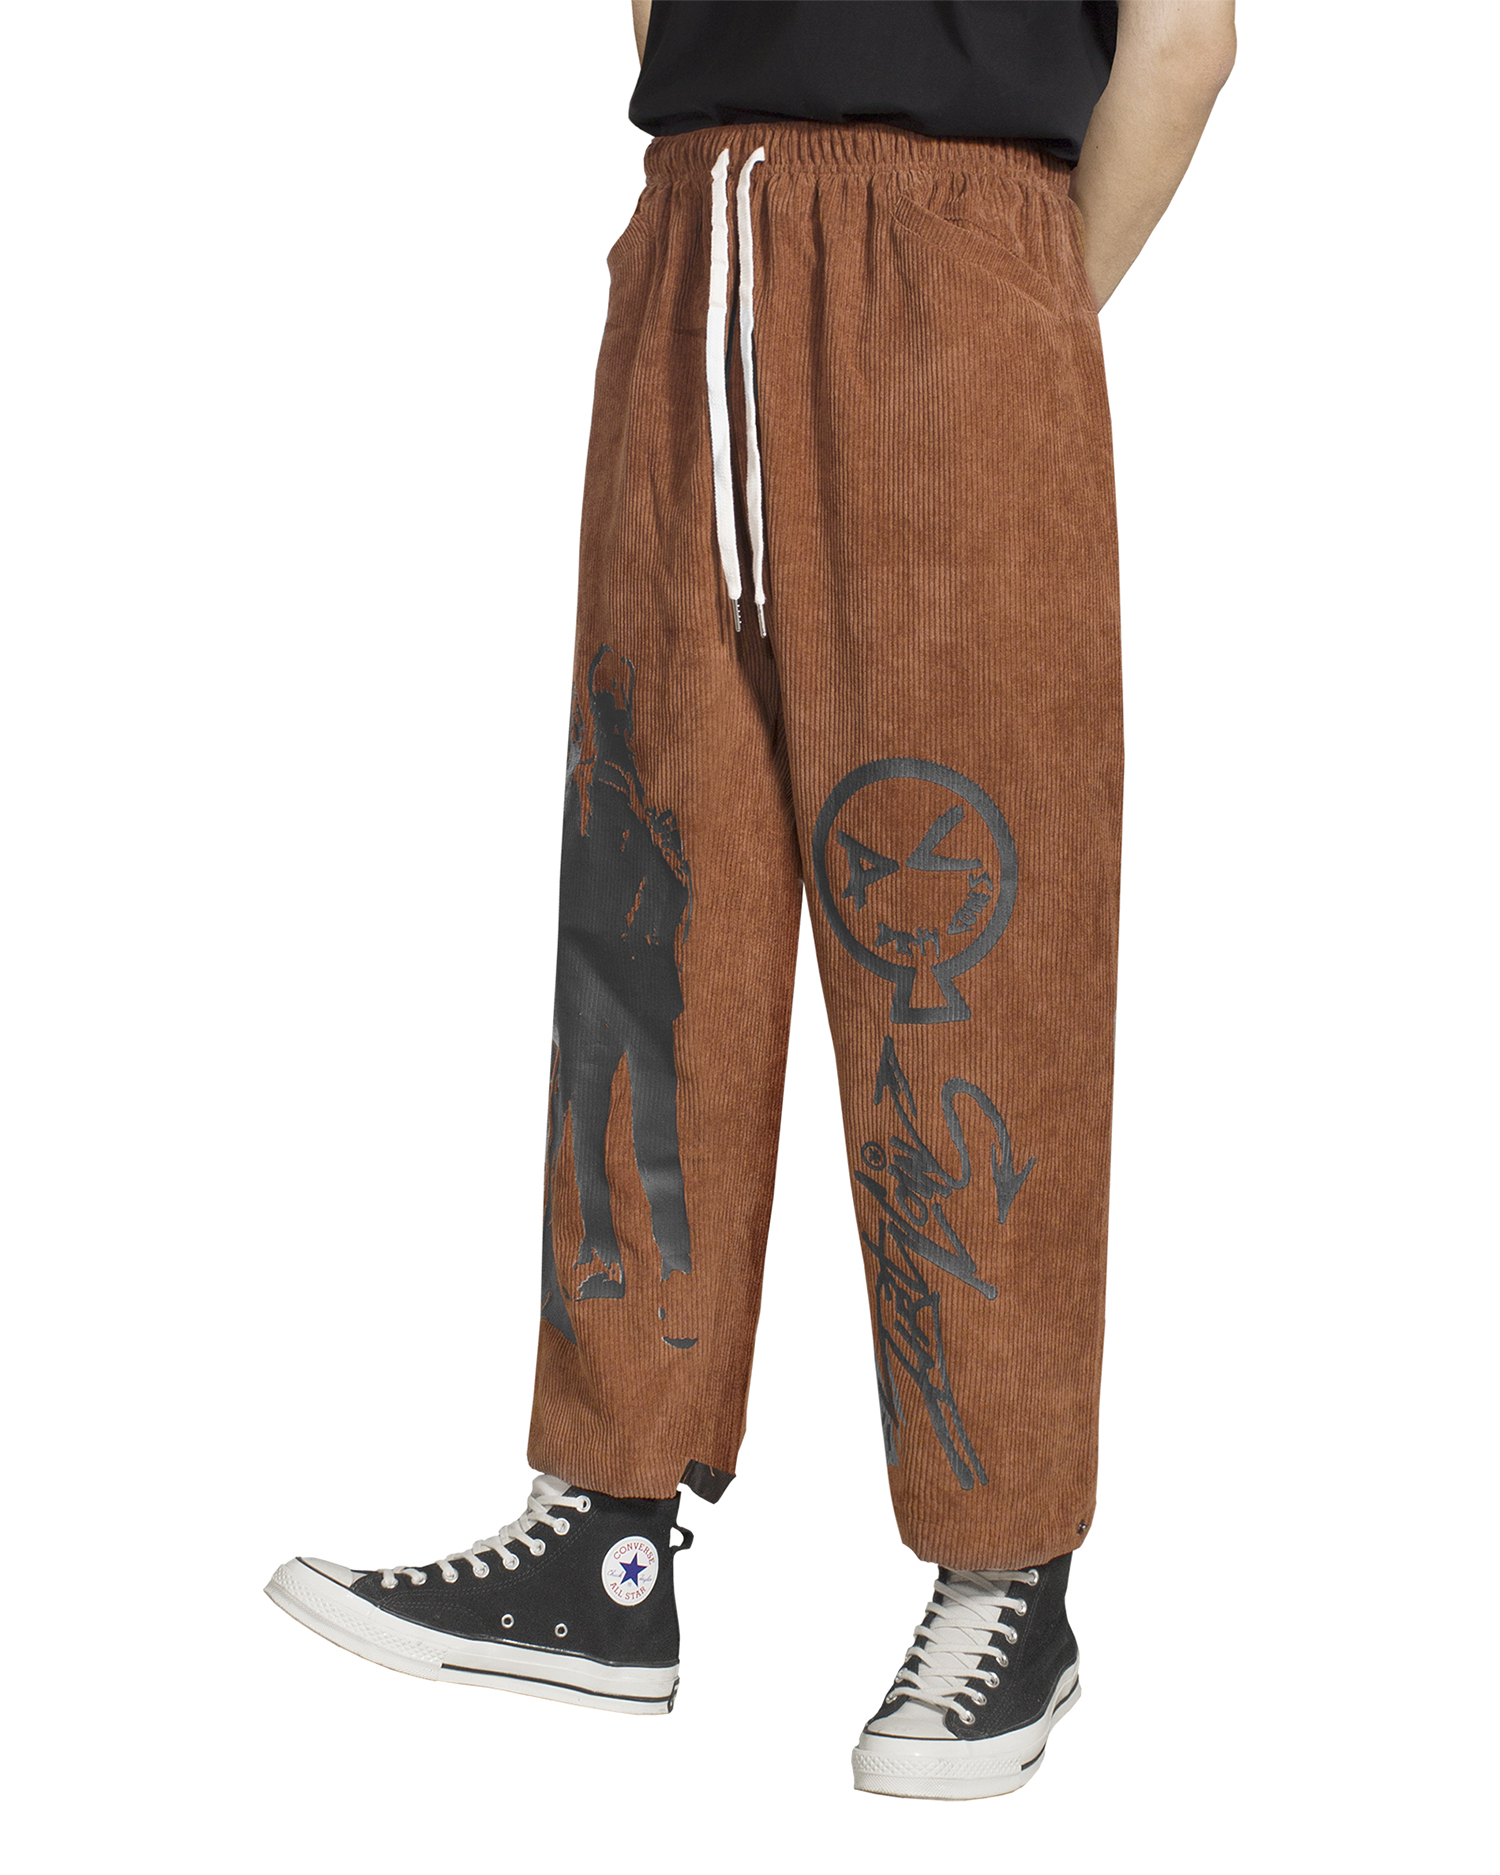 Corduroy KSA Pants - Copper Brown